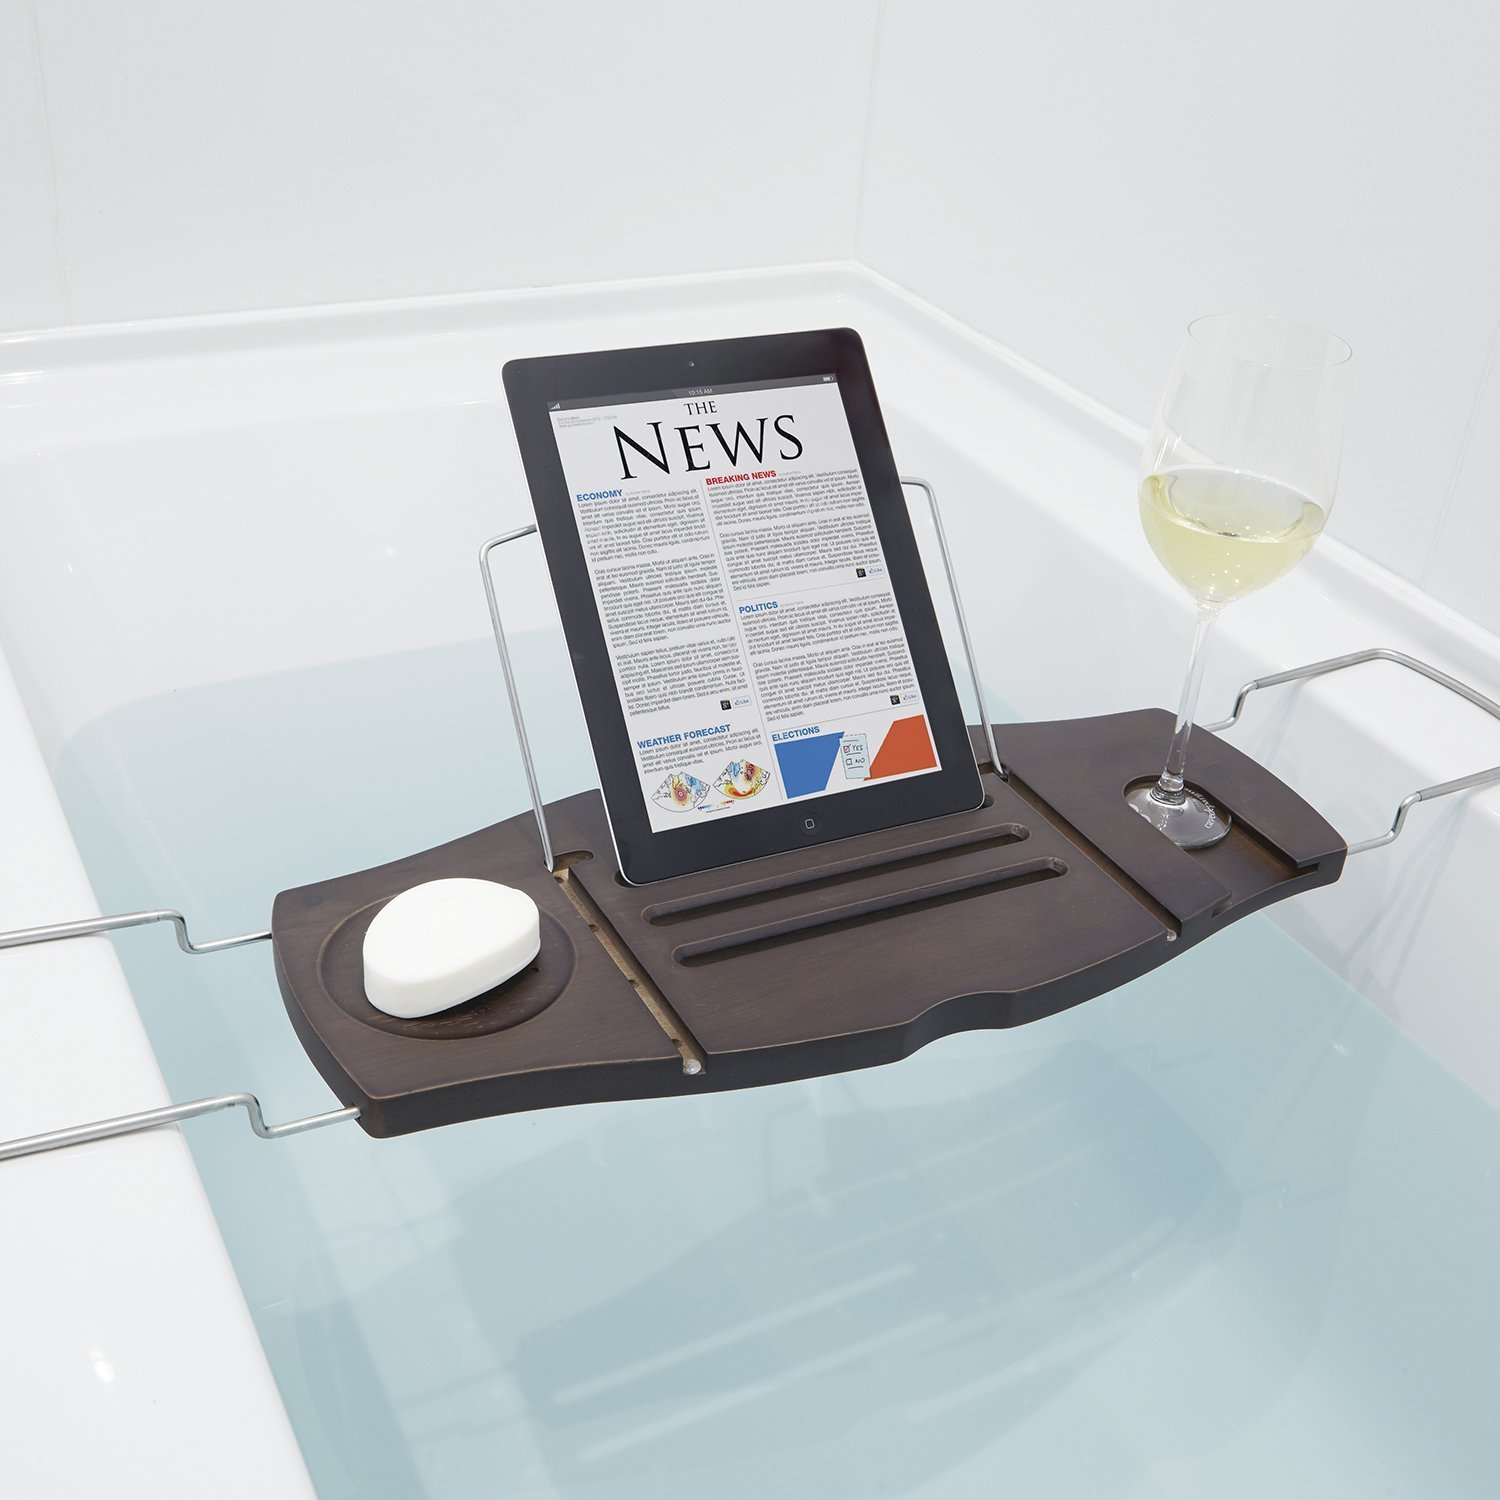 Bathroom Bathtub Laptop Wine Glass Candle Holder Shelf